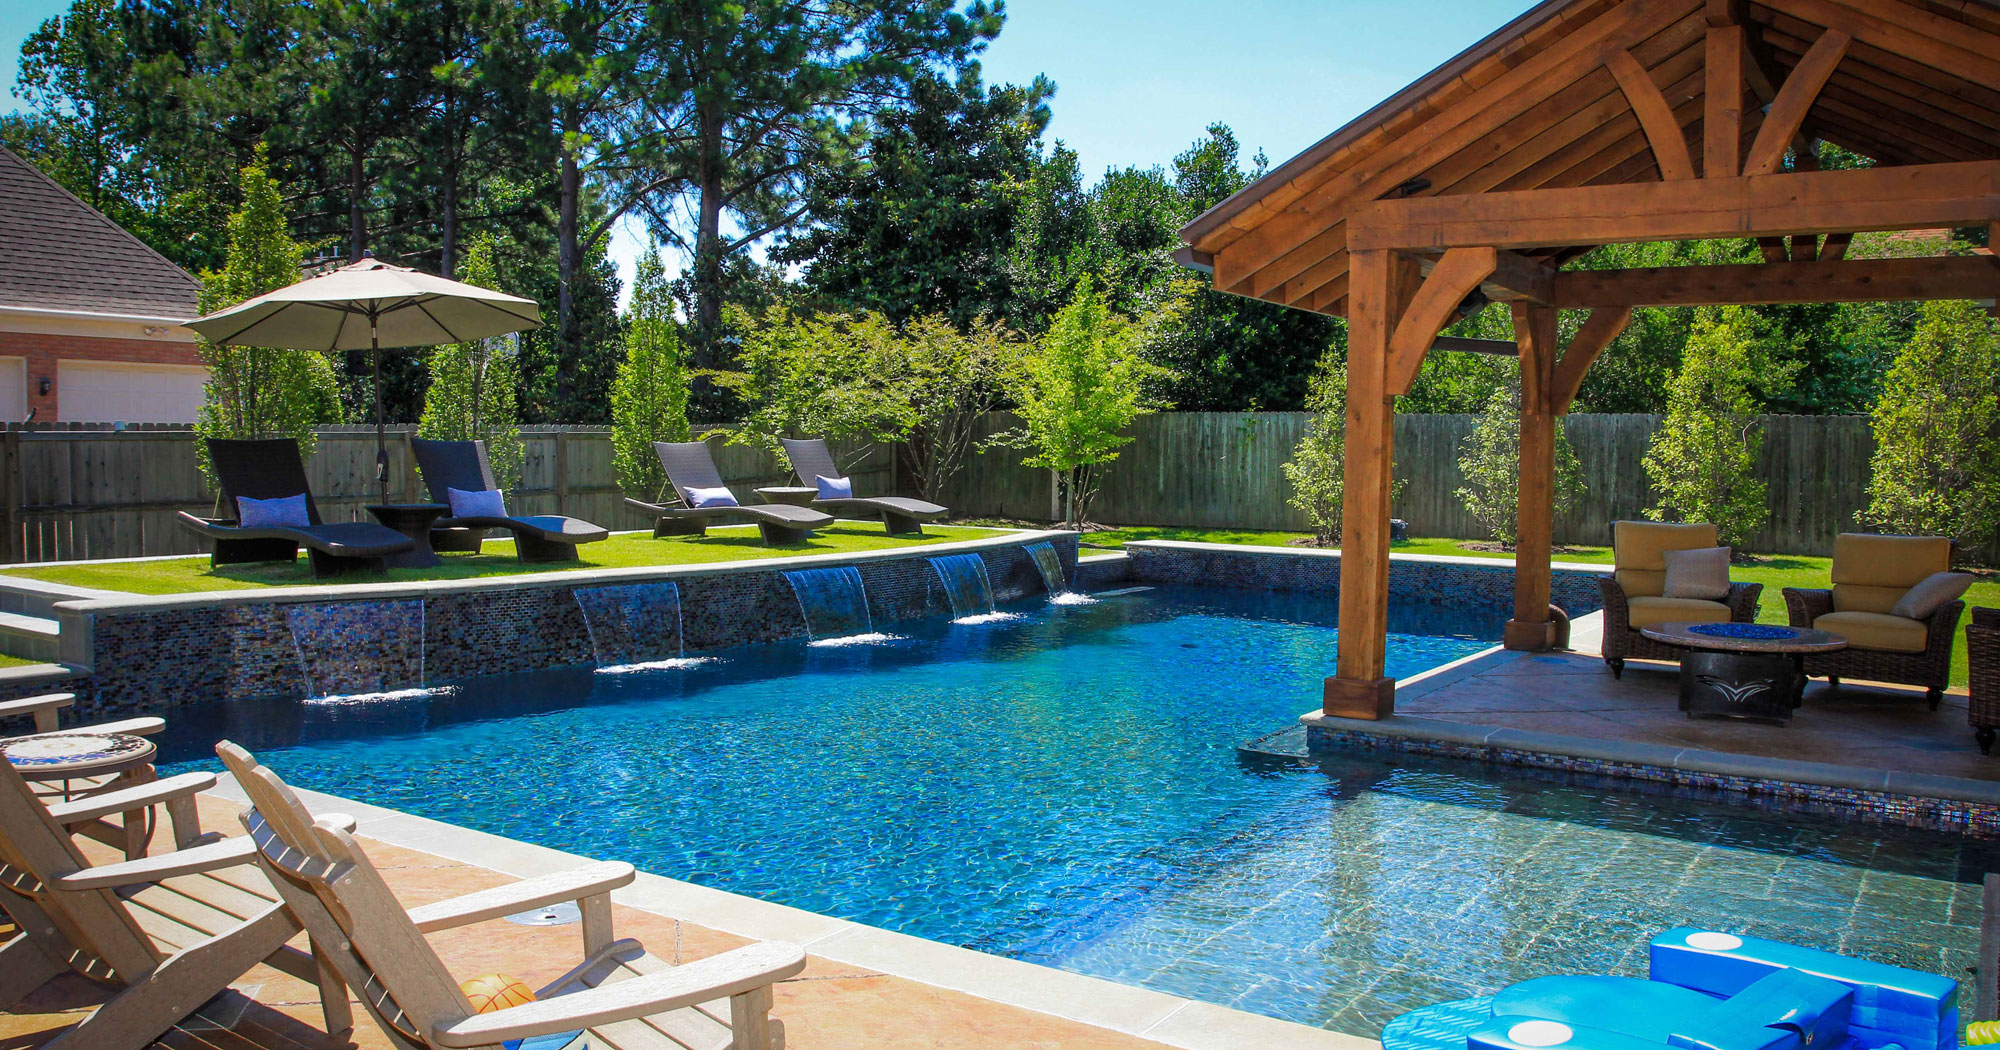 20 Backyard Pool Ideas For The Wealthy Homeowner inside 14 Genius Initiatives of How to Make Backyard Swimming Pool Ideas